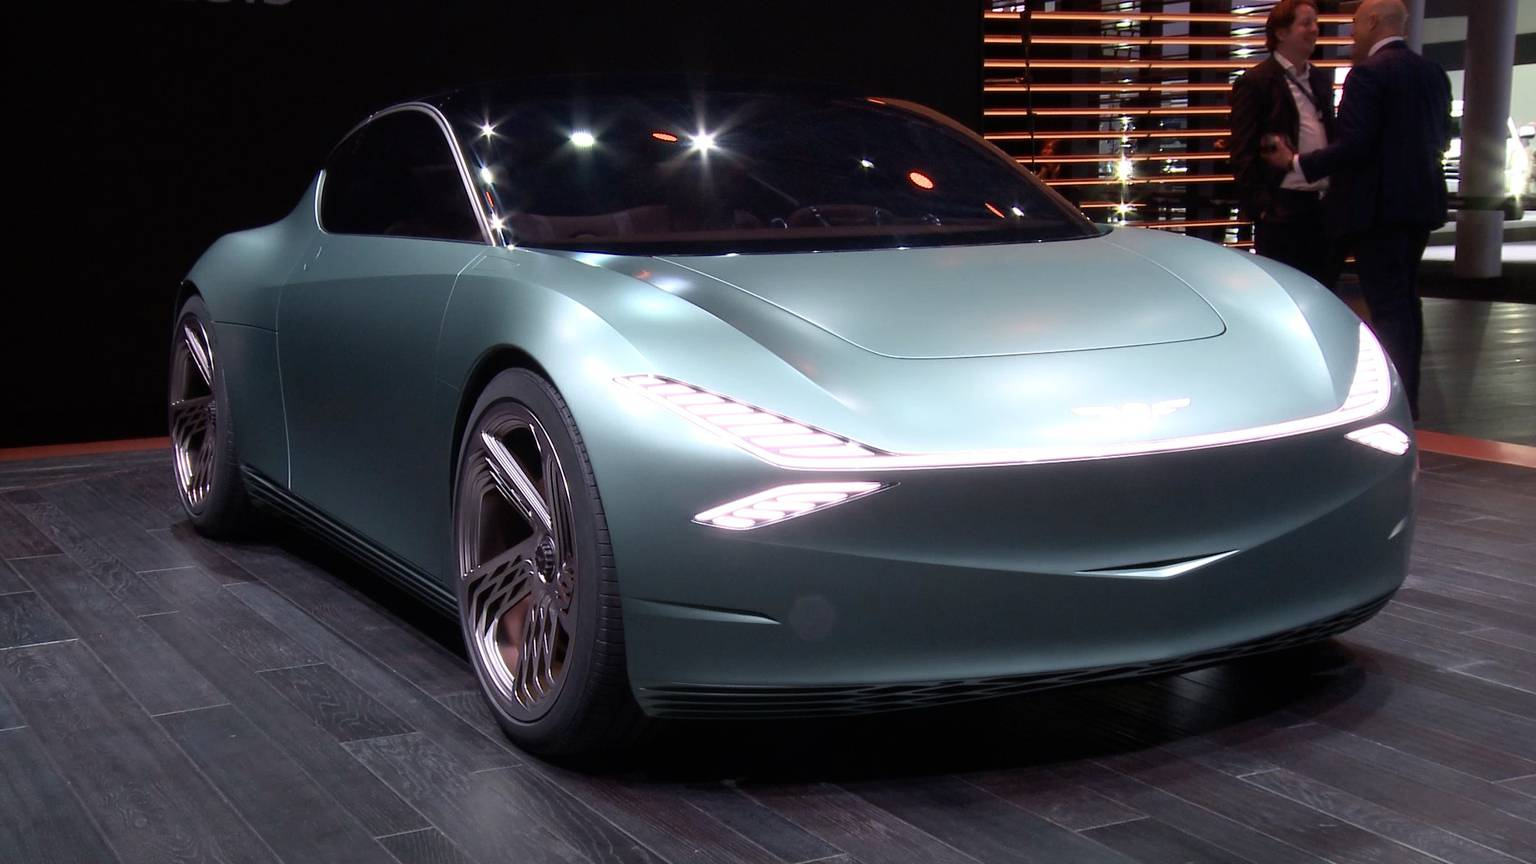 Eye-catching electrics and SUVs at the New York auto show